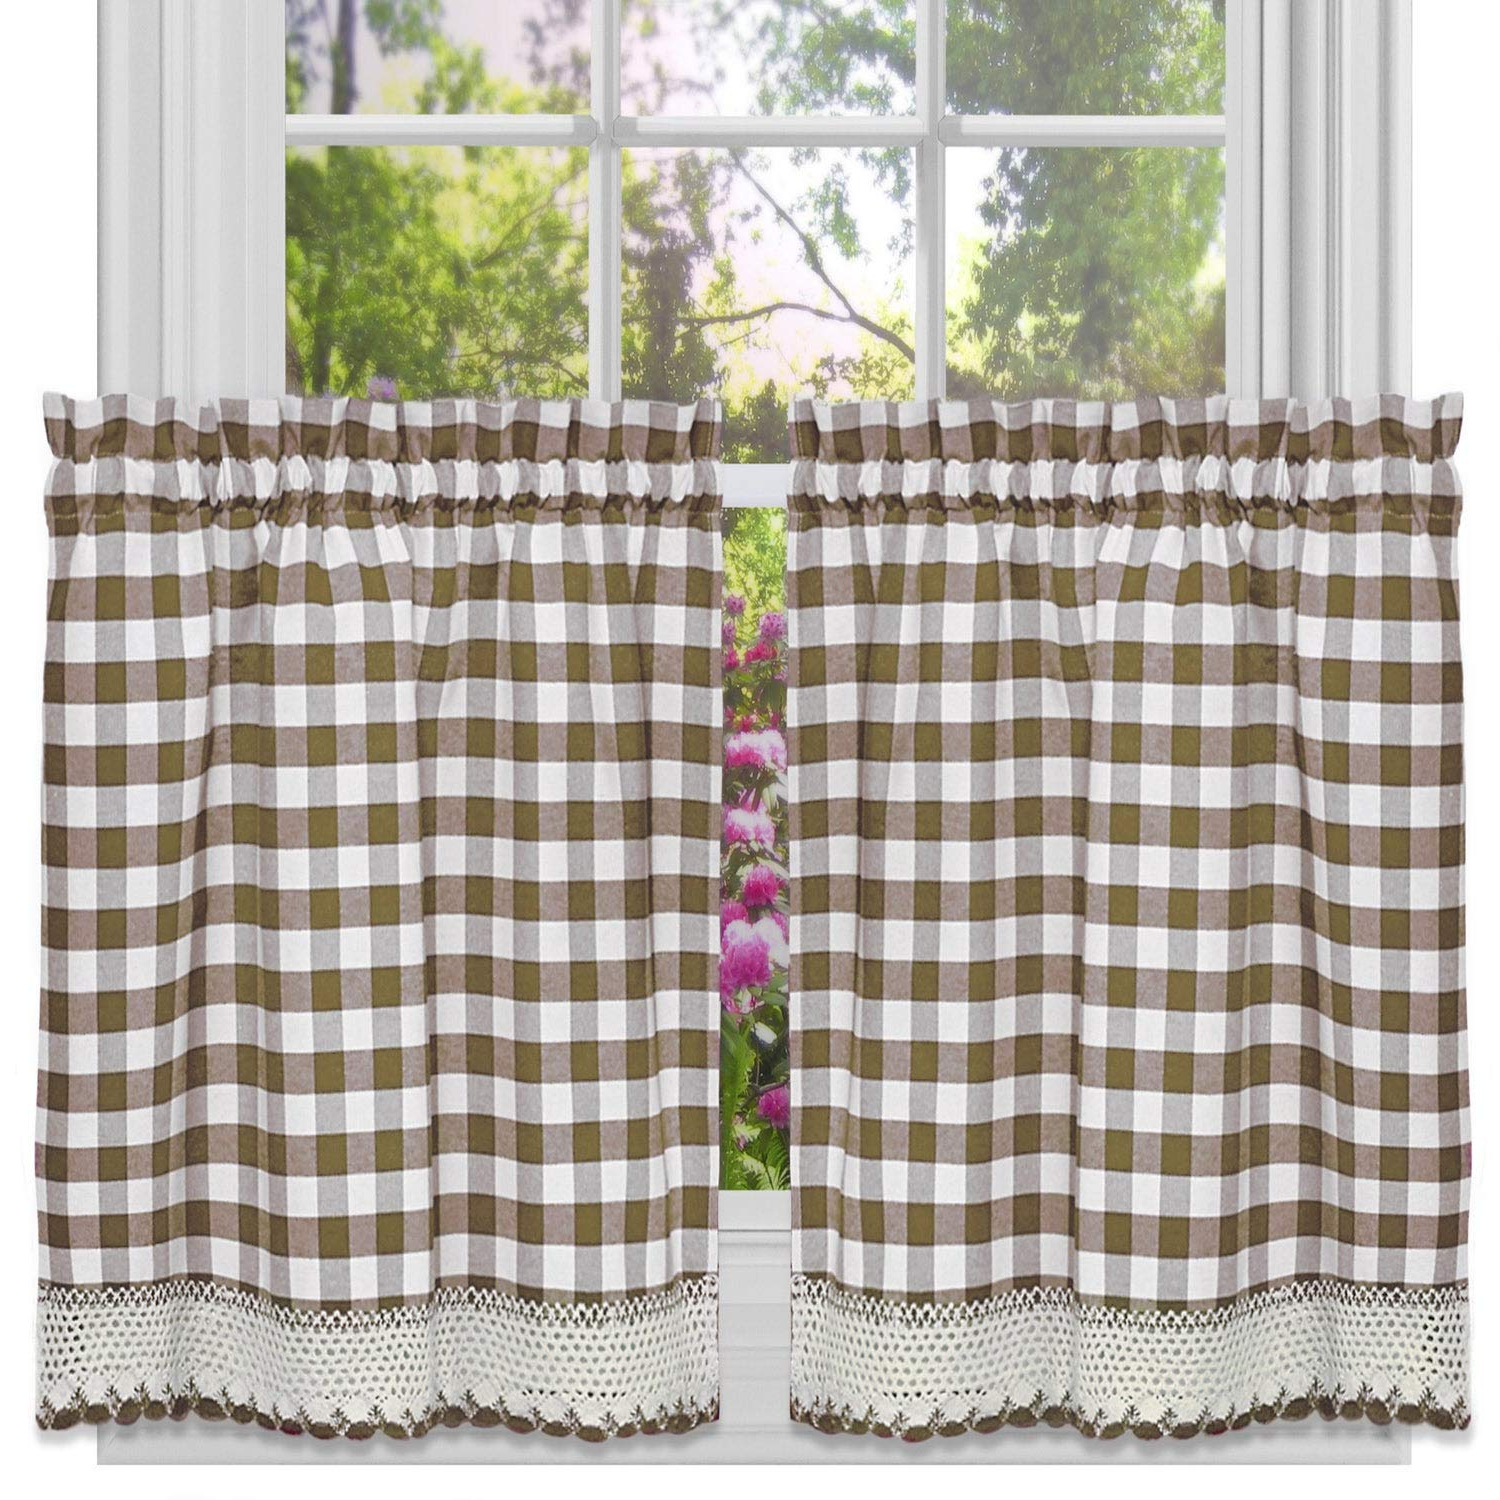 Burgundy Cotton Blend Classic Checkered Decorative Window Curtains Intended For Widely Used Amazon: Bed Bath N More Classic Buffalo Check Kitchen (View 6 of 20)